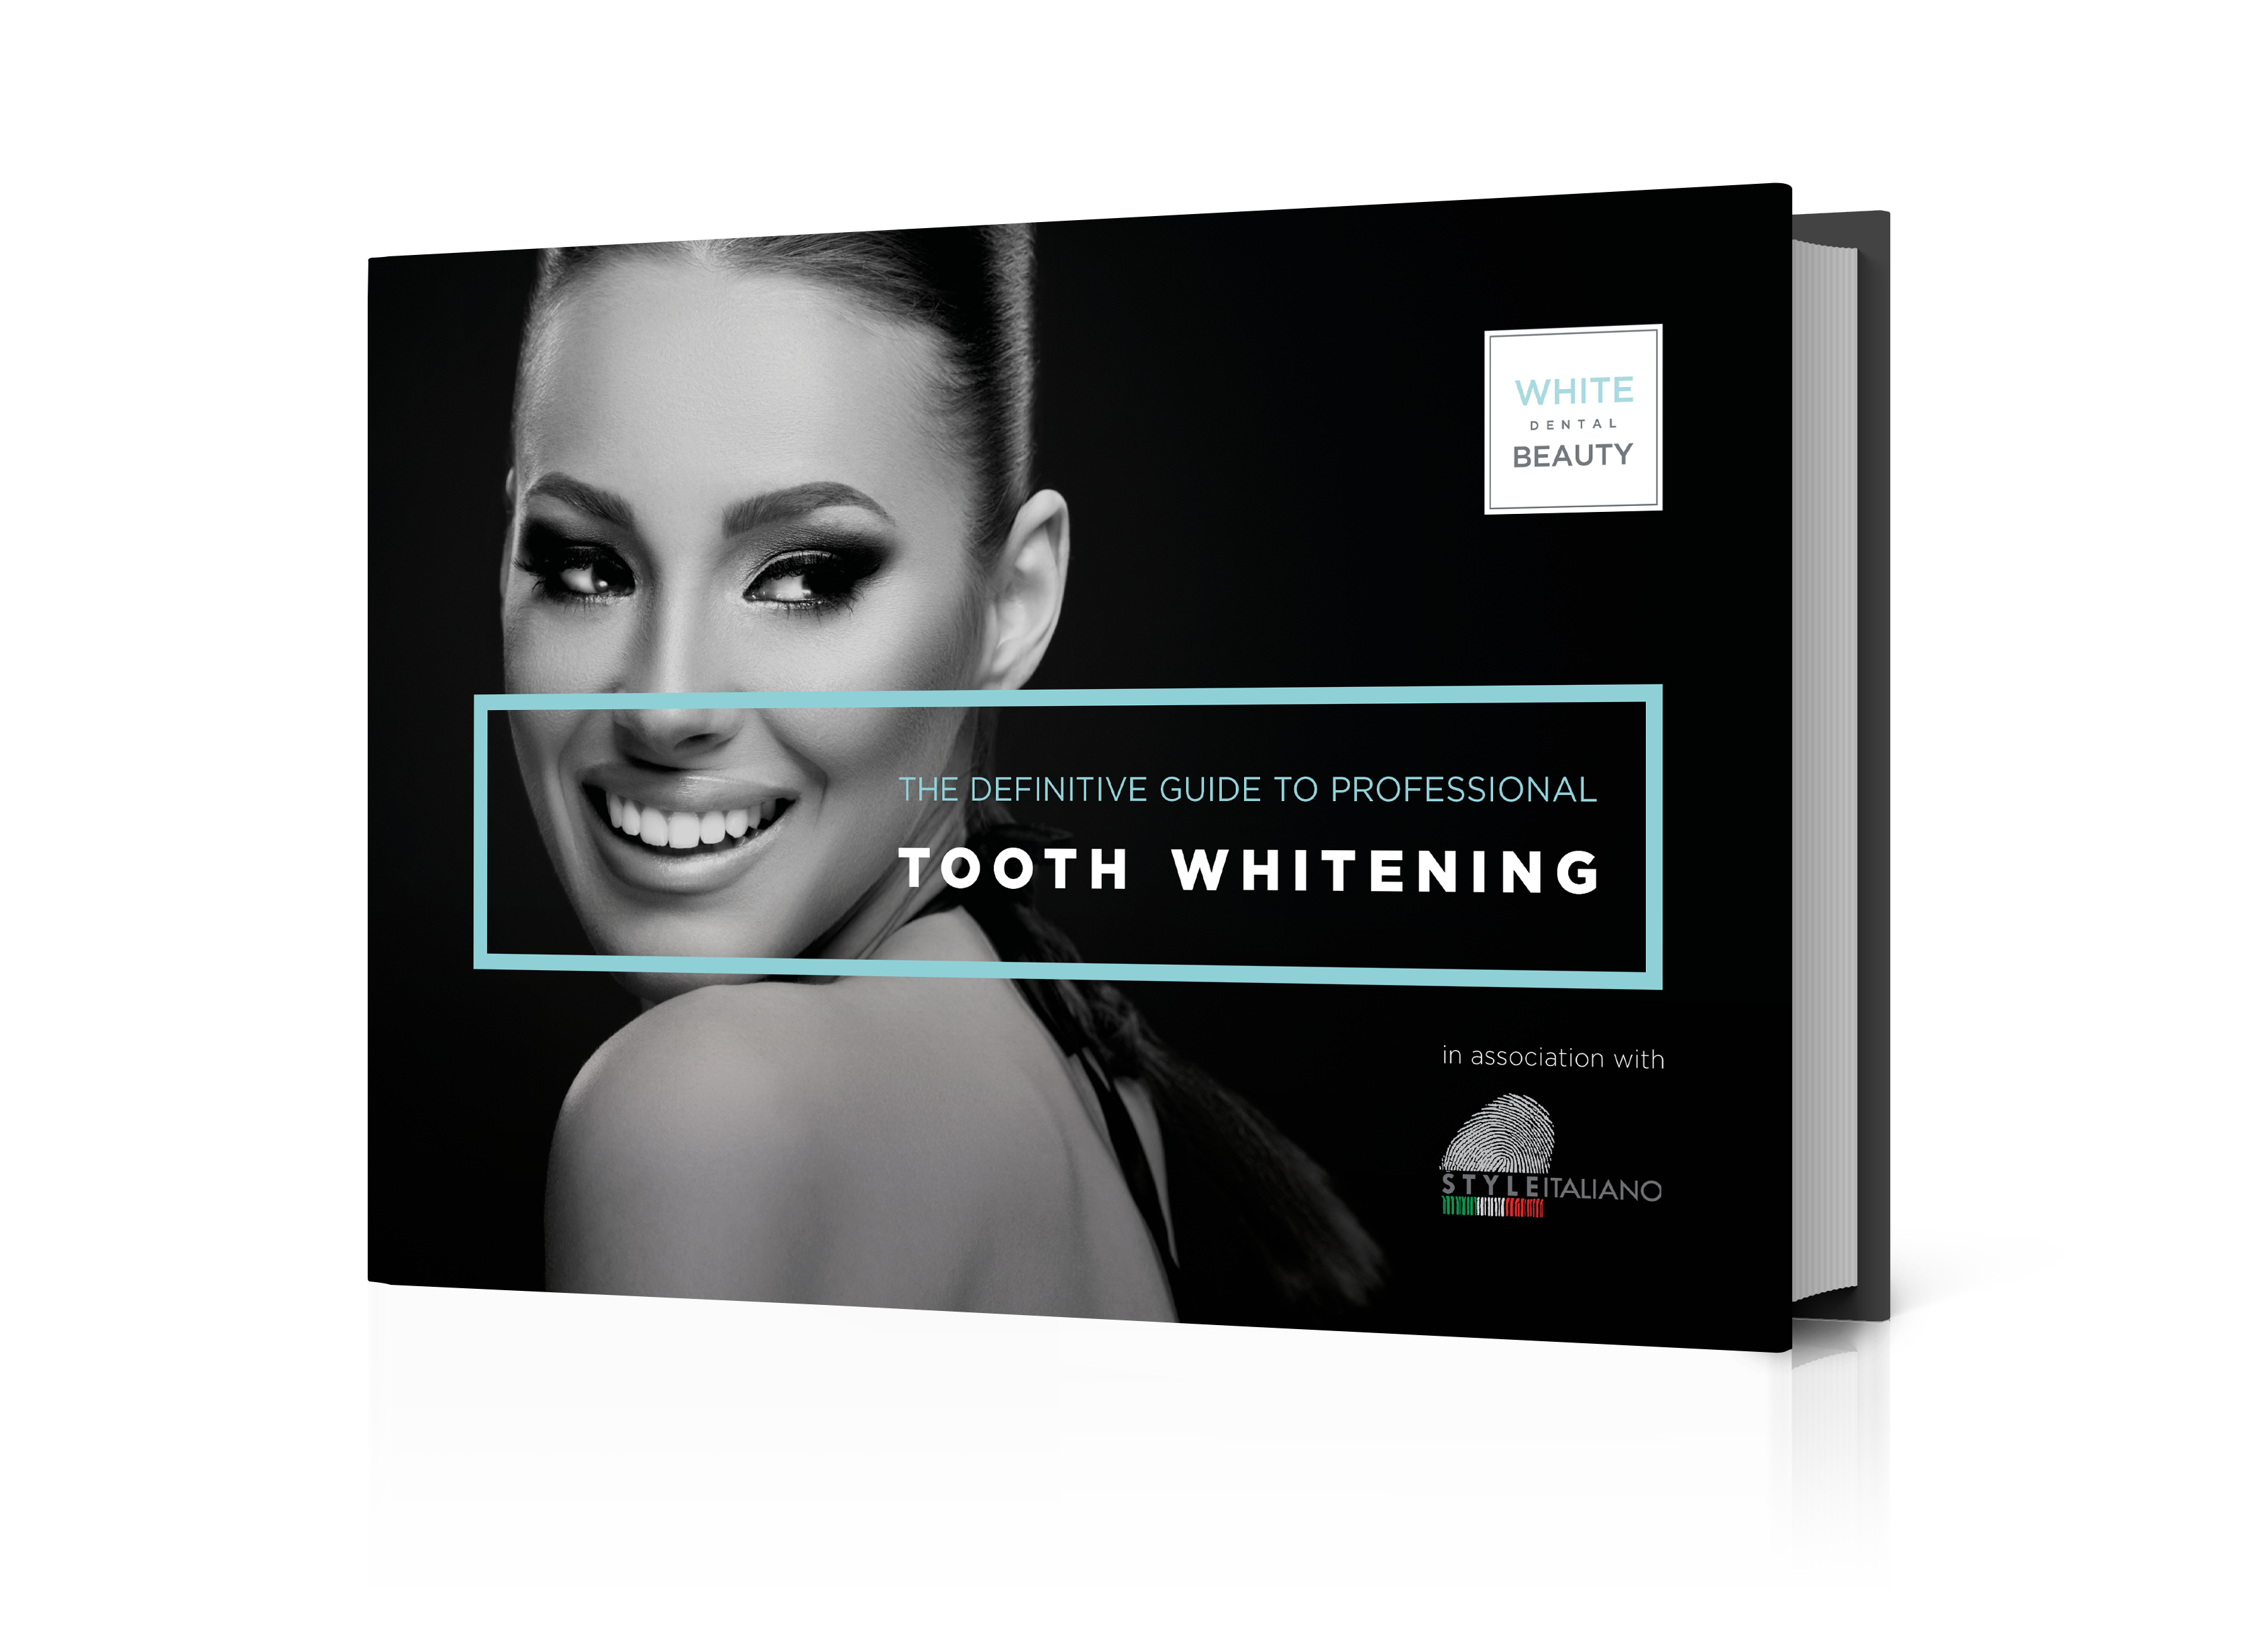 train yourself with the definitive guide to Tooth-Whitening